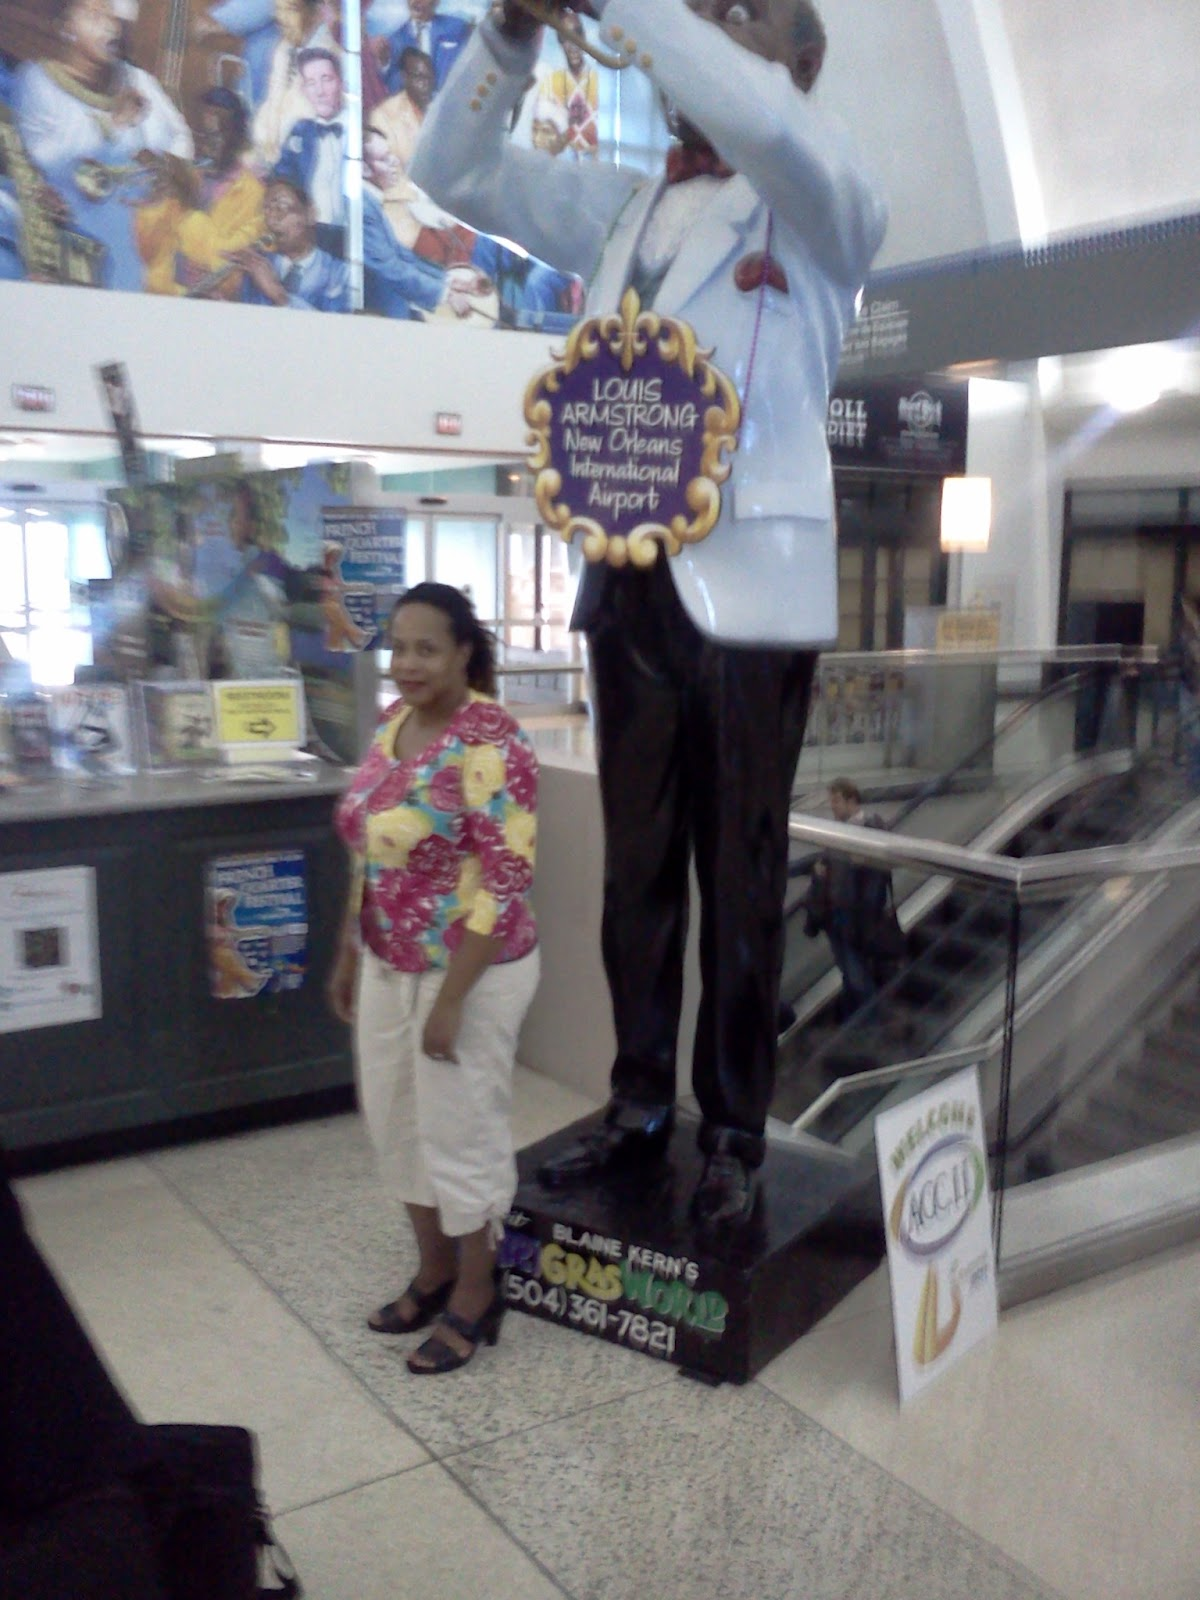 Louis Armstrong Statue New Orleans International Airport